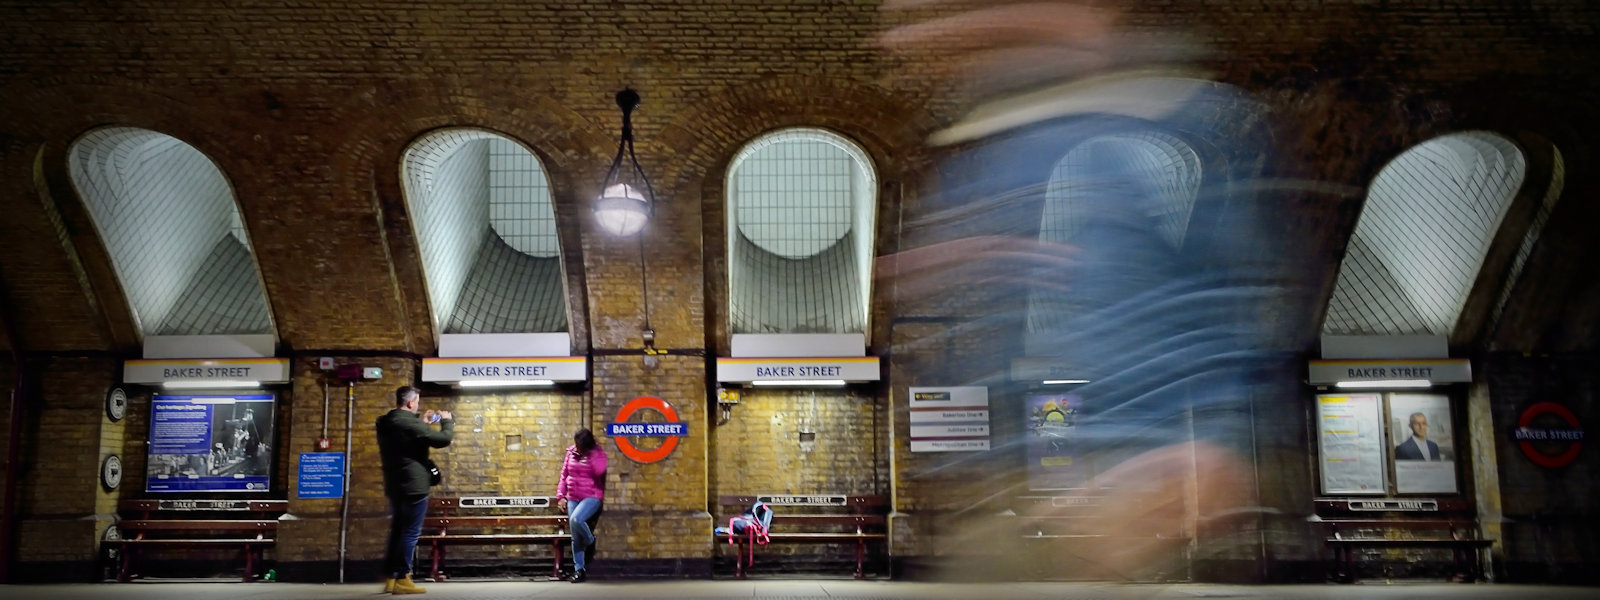 """Ghost Of Baker Street Station"", Baker Street Underground Station, London, UK"